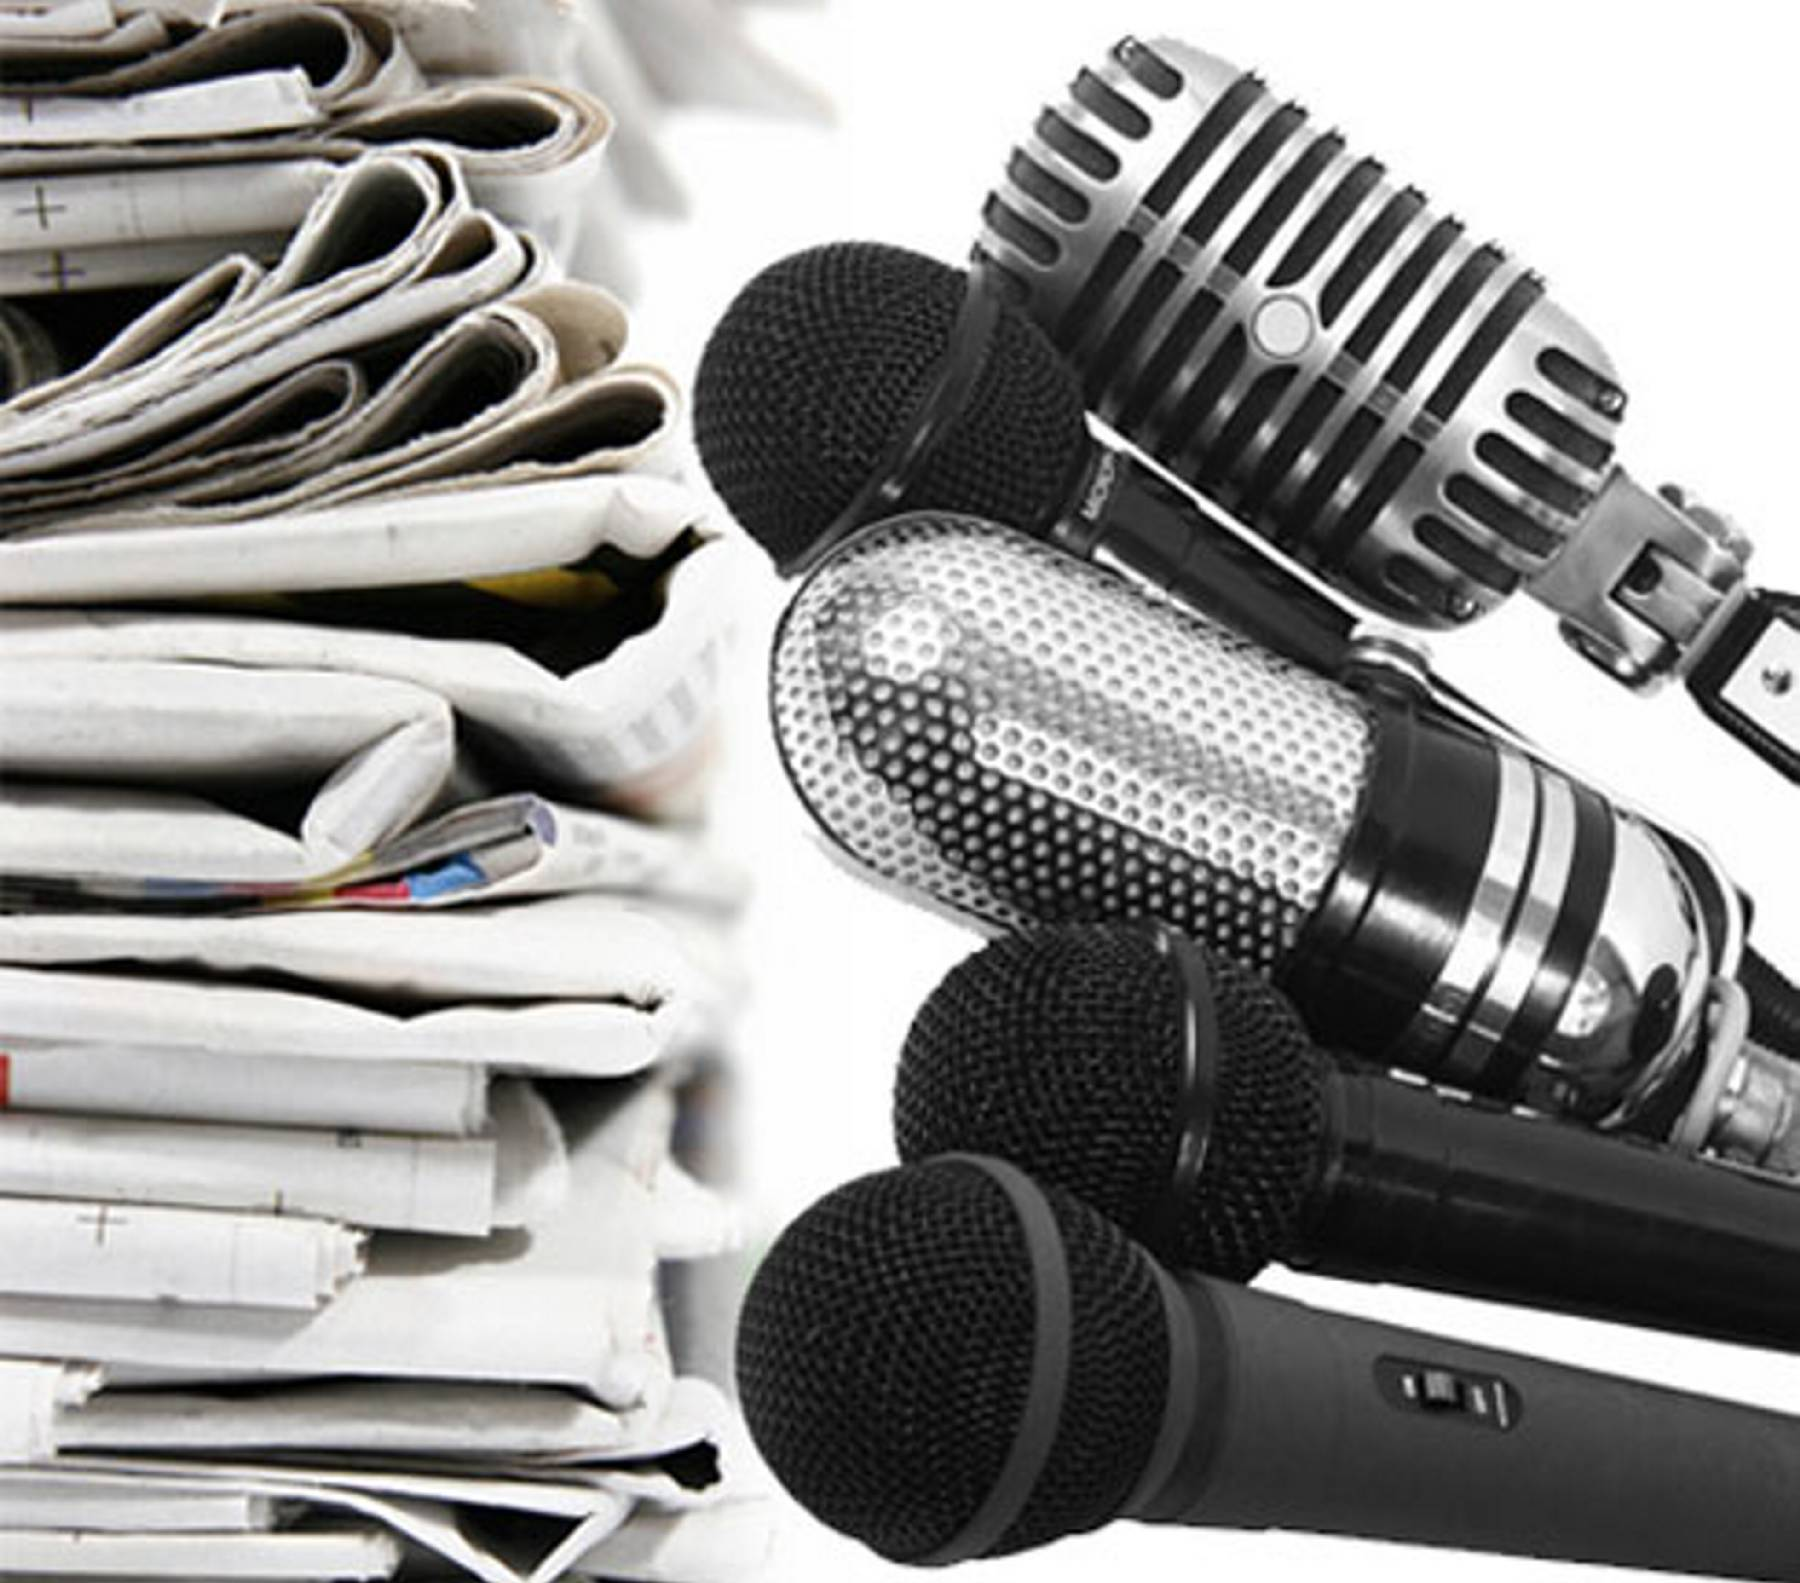 Workshops held for aspiring young journalists